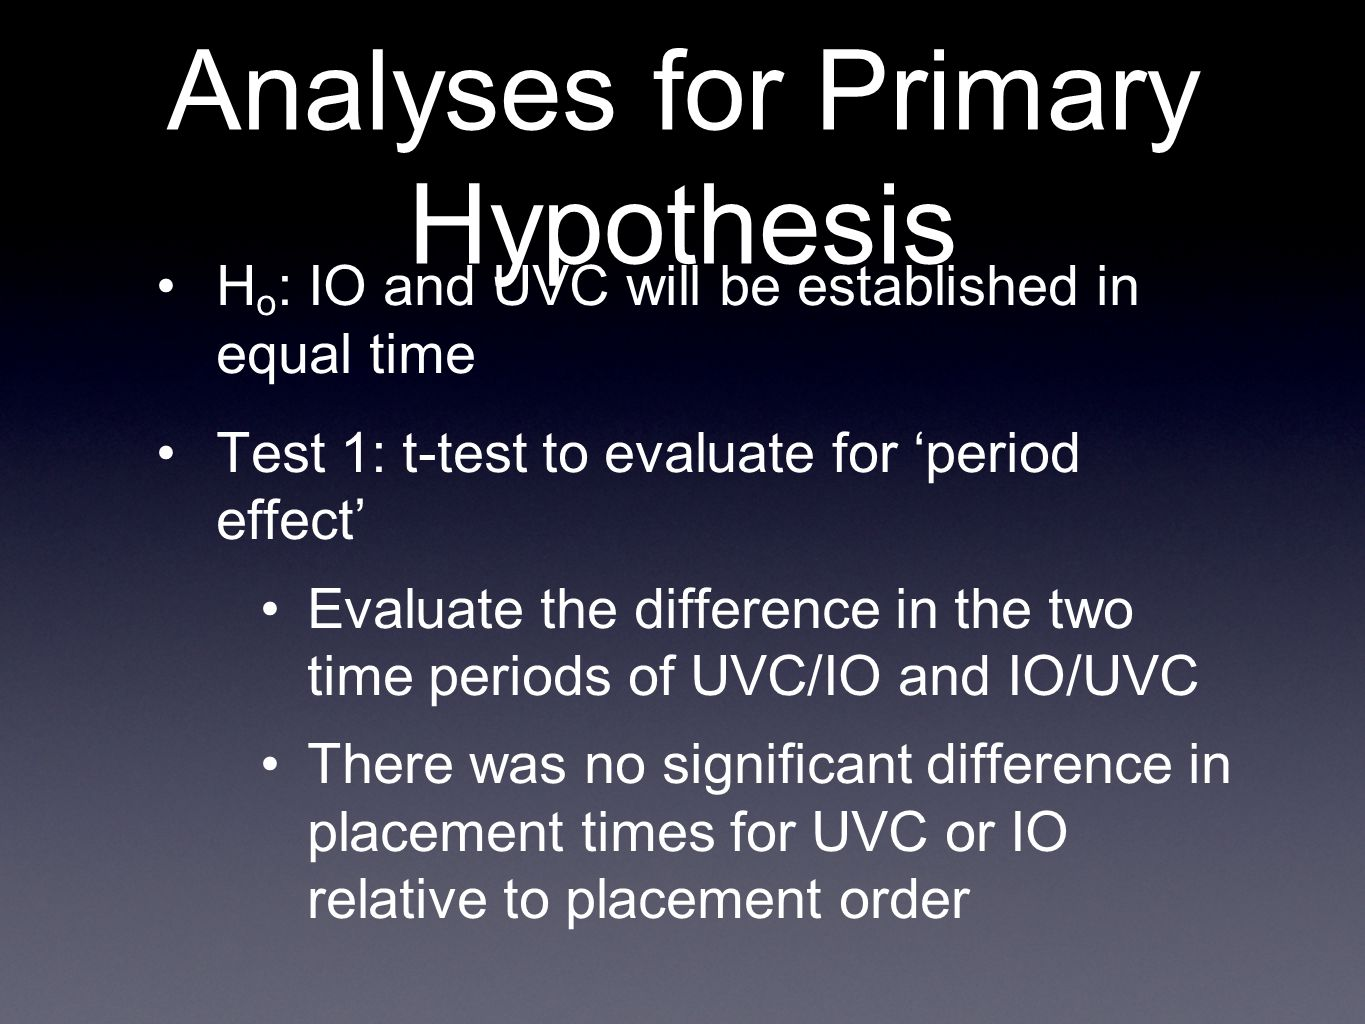 Analyses for Primary Hypothesis H o : IO and UVC will be established in equal time Test 1: t-test to evaluate for 'period effect' Evaluate the difference in the two time periods of UVC/IO and IO/UVC There was no significant difference in placement times for UVC or IO relative to placement order